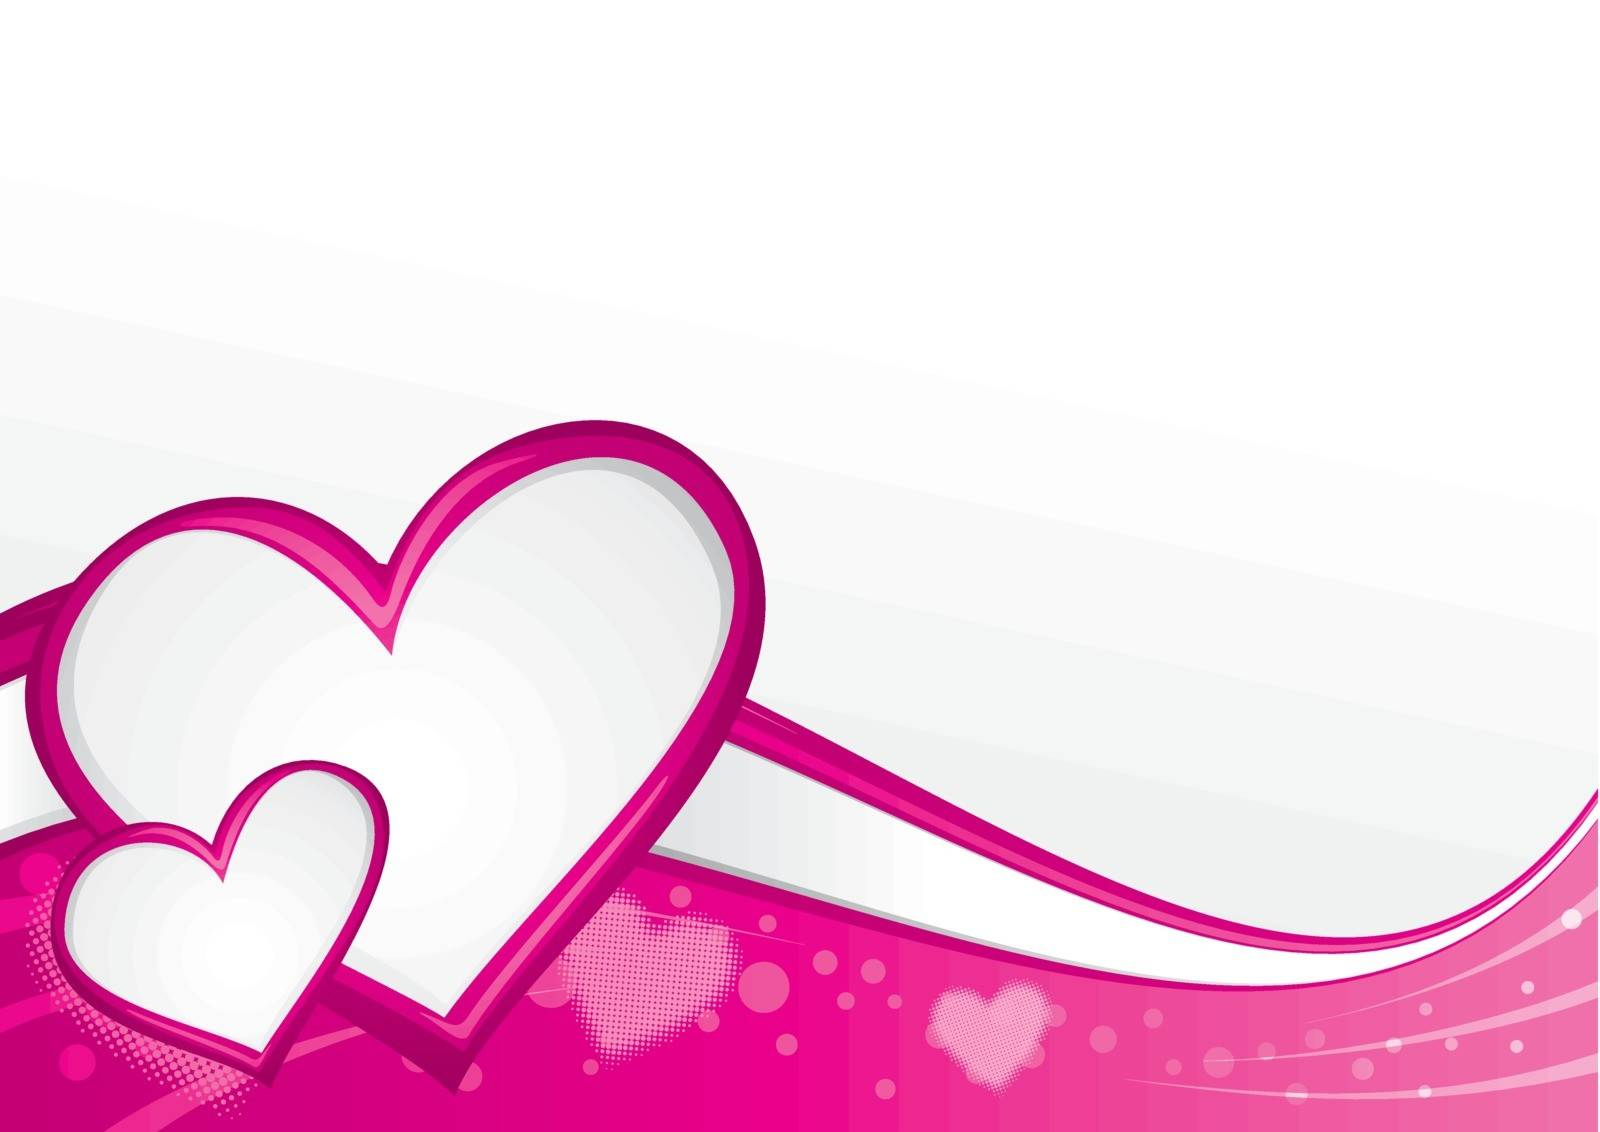 Background with hearts in vibrant colors